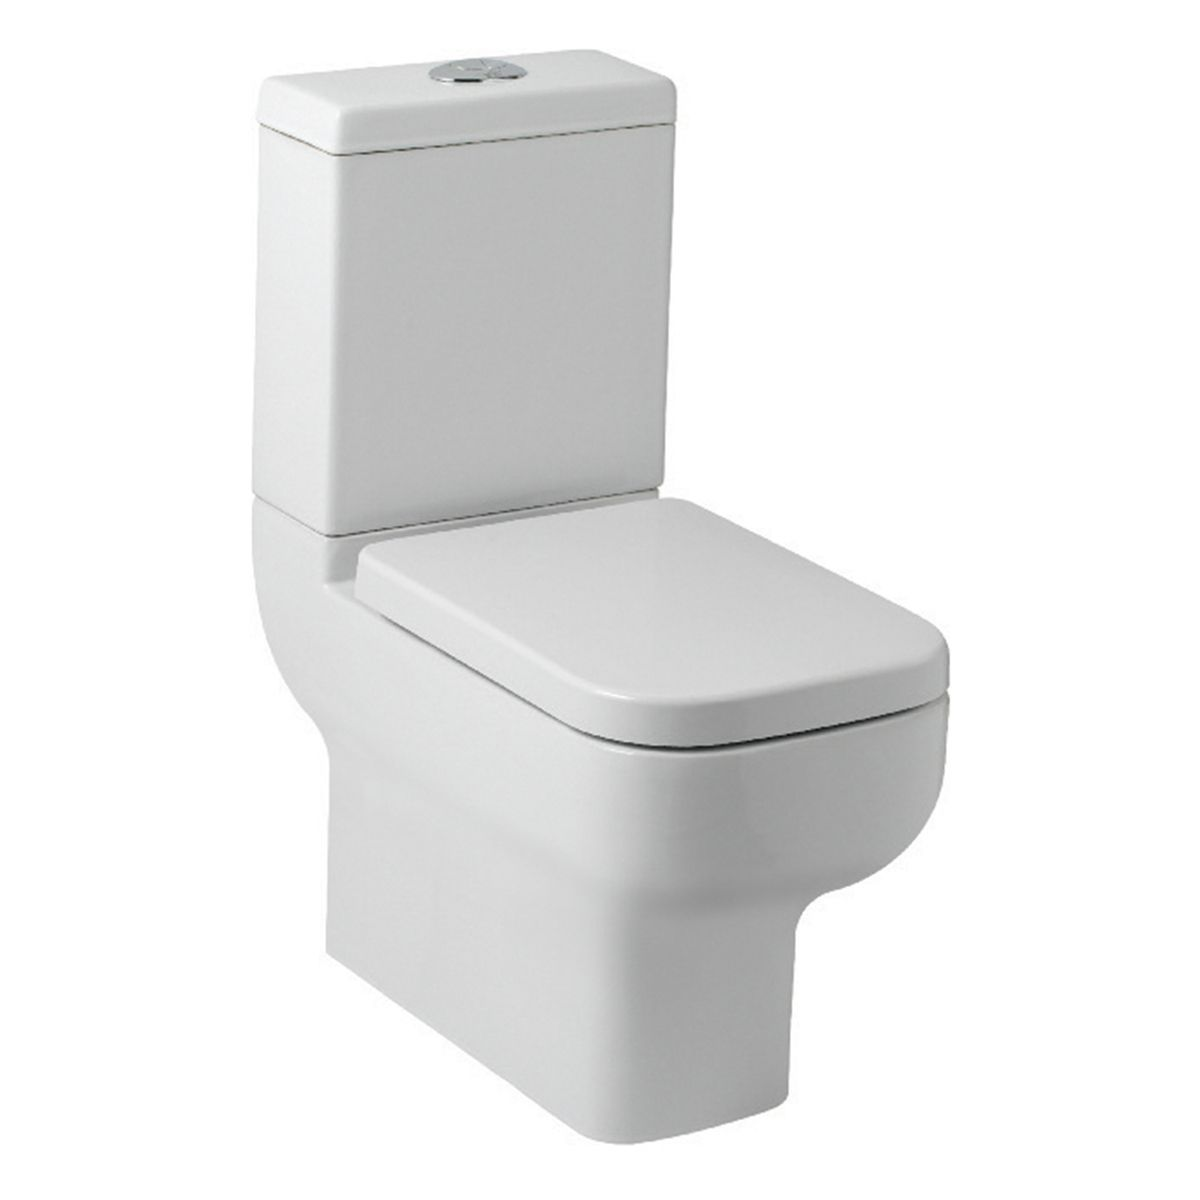 Kartell K-VIT Options 600 Toilet with Soft Close Seat